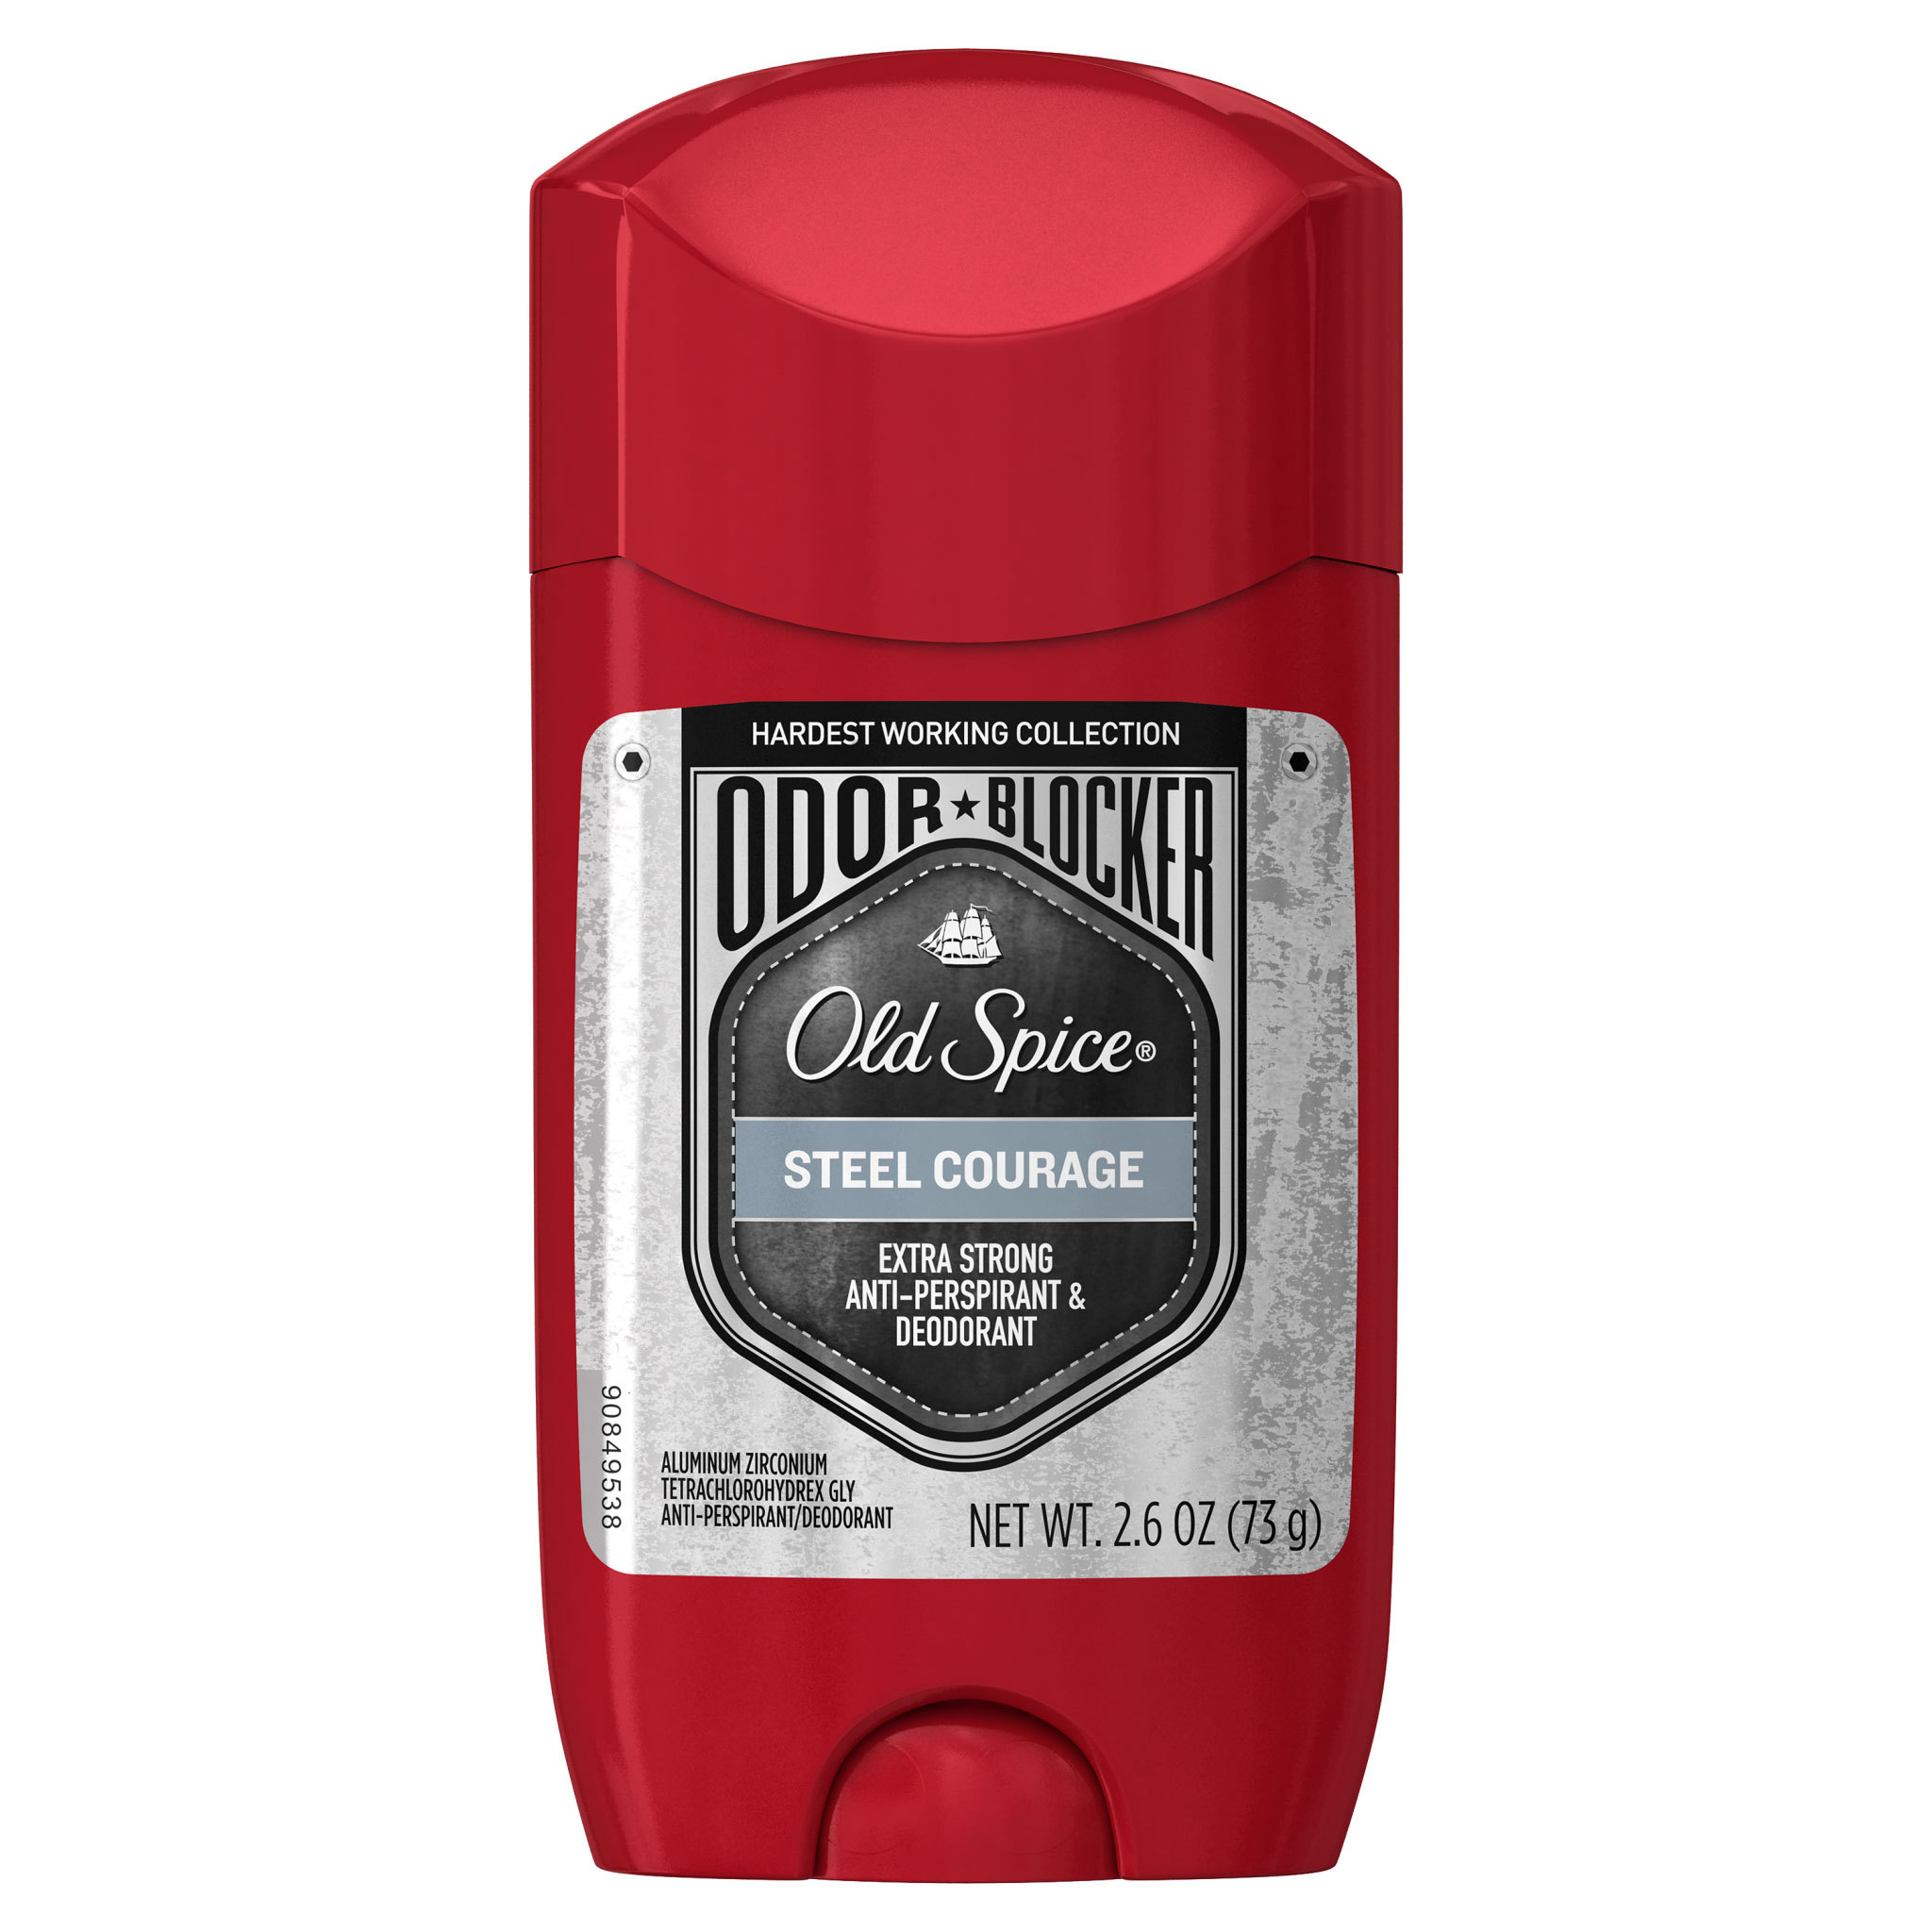 Old Spice Odor Blocker Anti-Perspirant in new Steel Courage Scent (Photo: Business Wire)